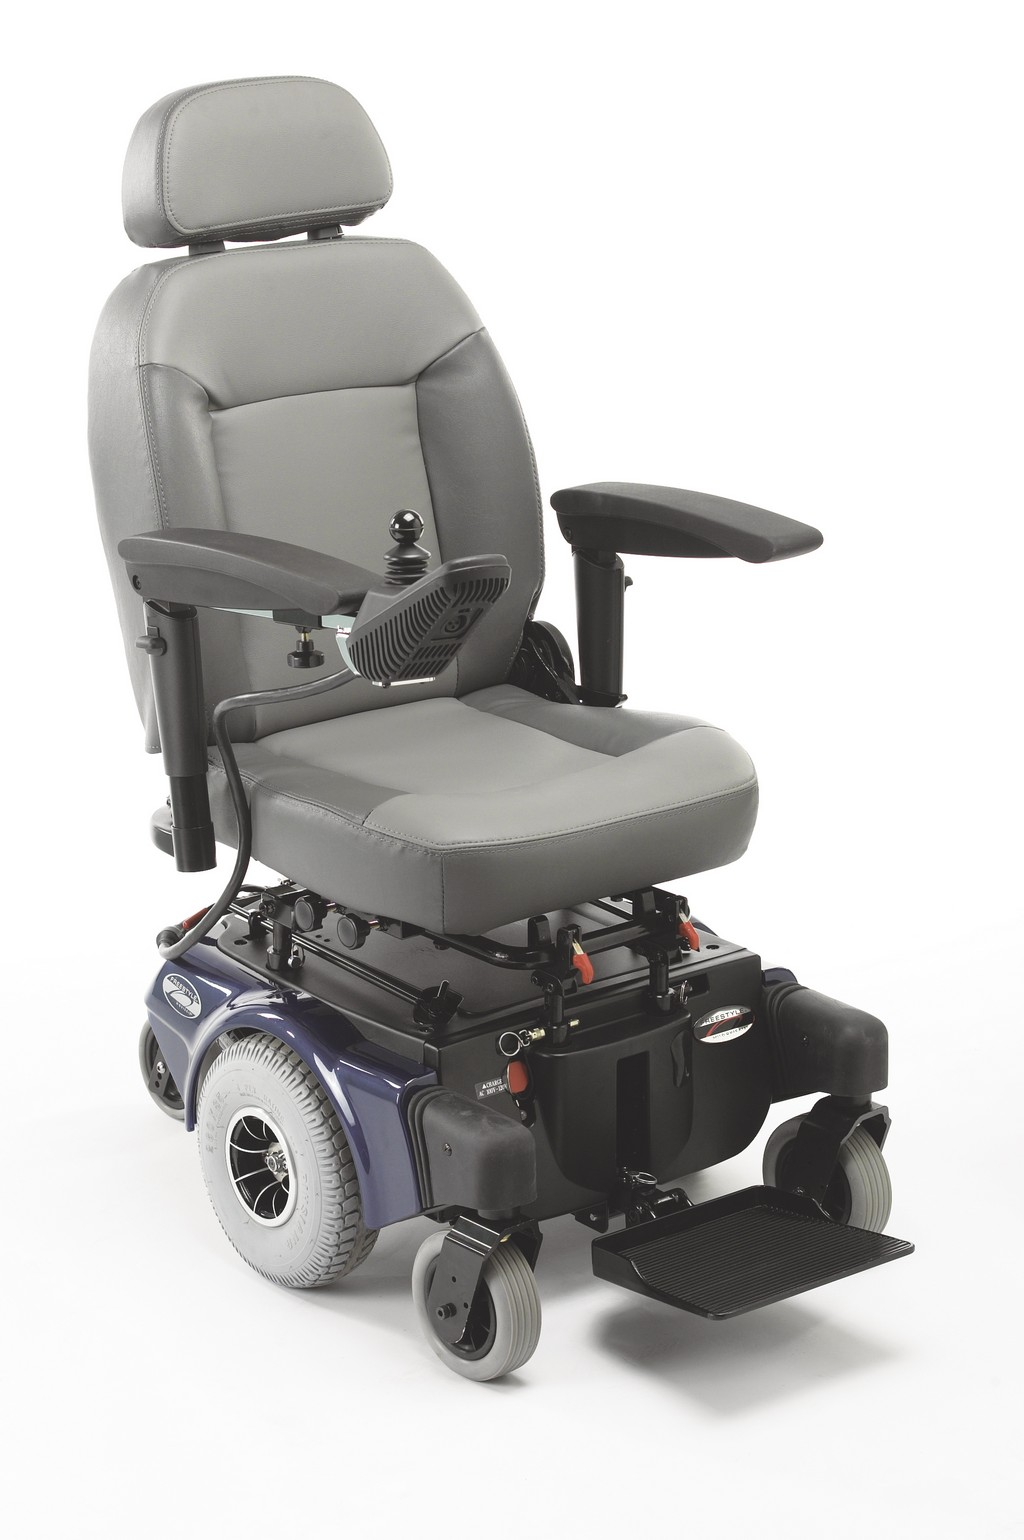 wheel chair electric, ihow to operate an electric wheel chair, electric wheel chair parts, medicare electric wheel chairs